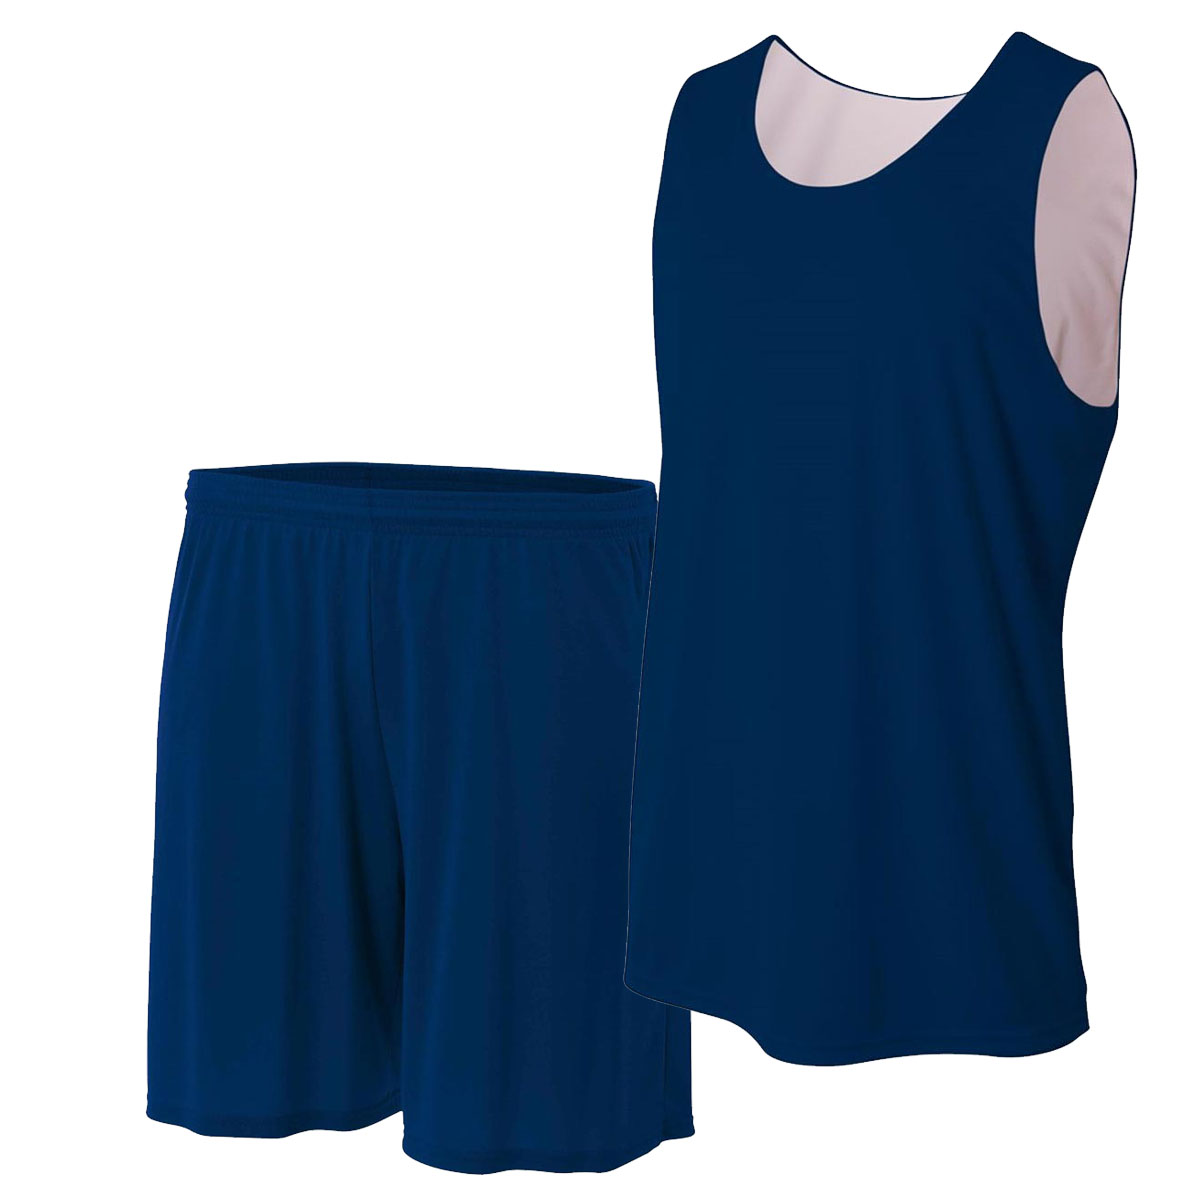 Reversible Basketball Uniforms Manufacturers in Nanded